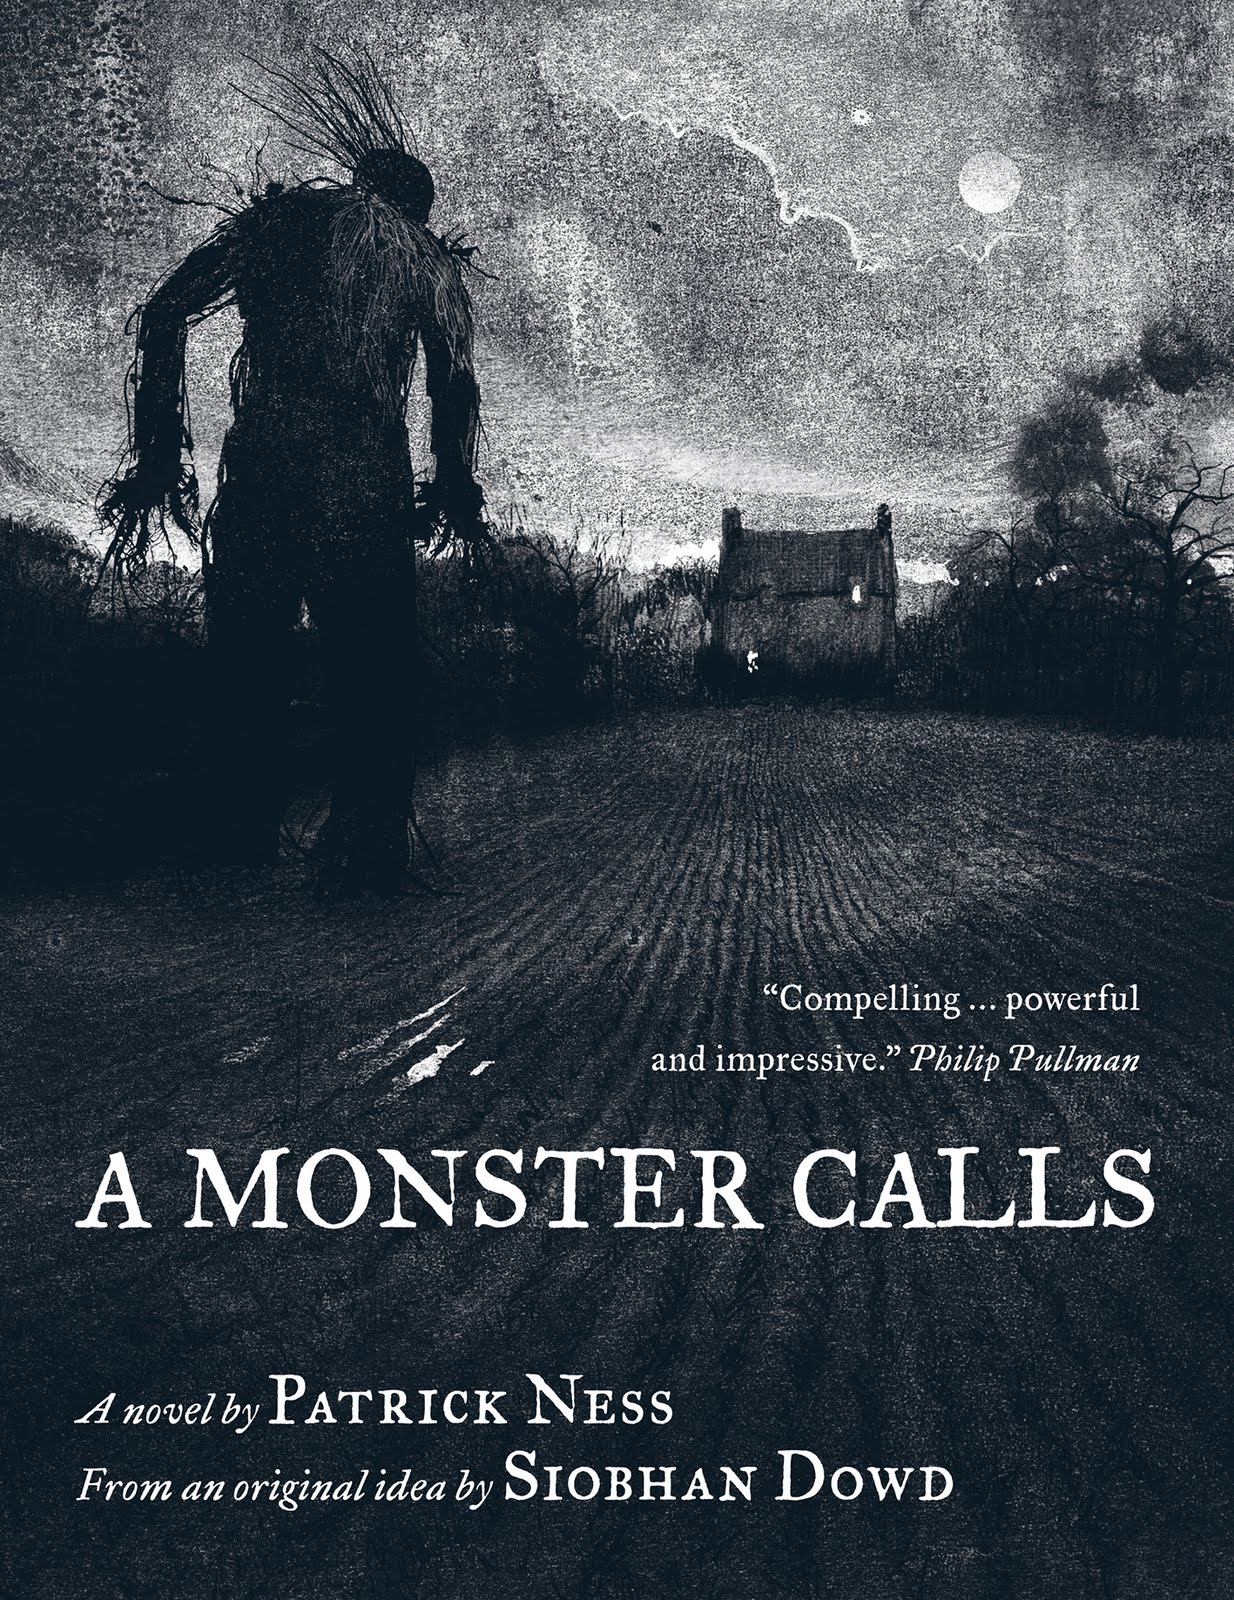 A Monster Calls-Official Poster Banner COVER-12MAIO2014